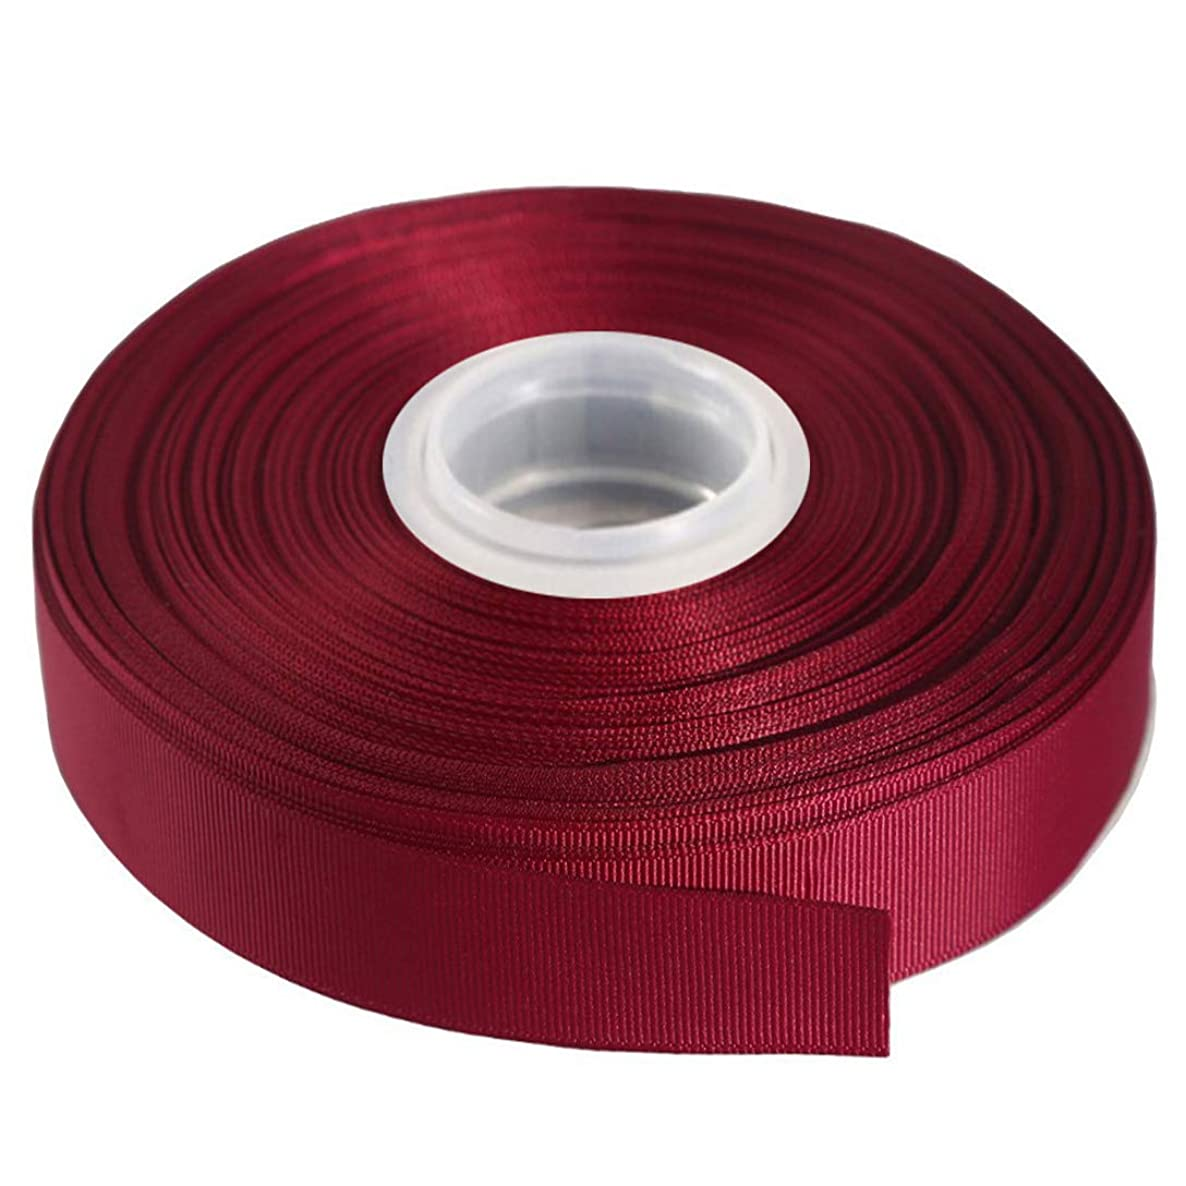 Kailin 3/4 inch Wide Grosgrain Ribbon 25 Yards Roll Multiple Colors Wine